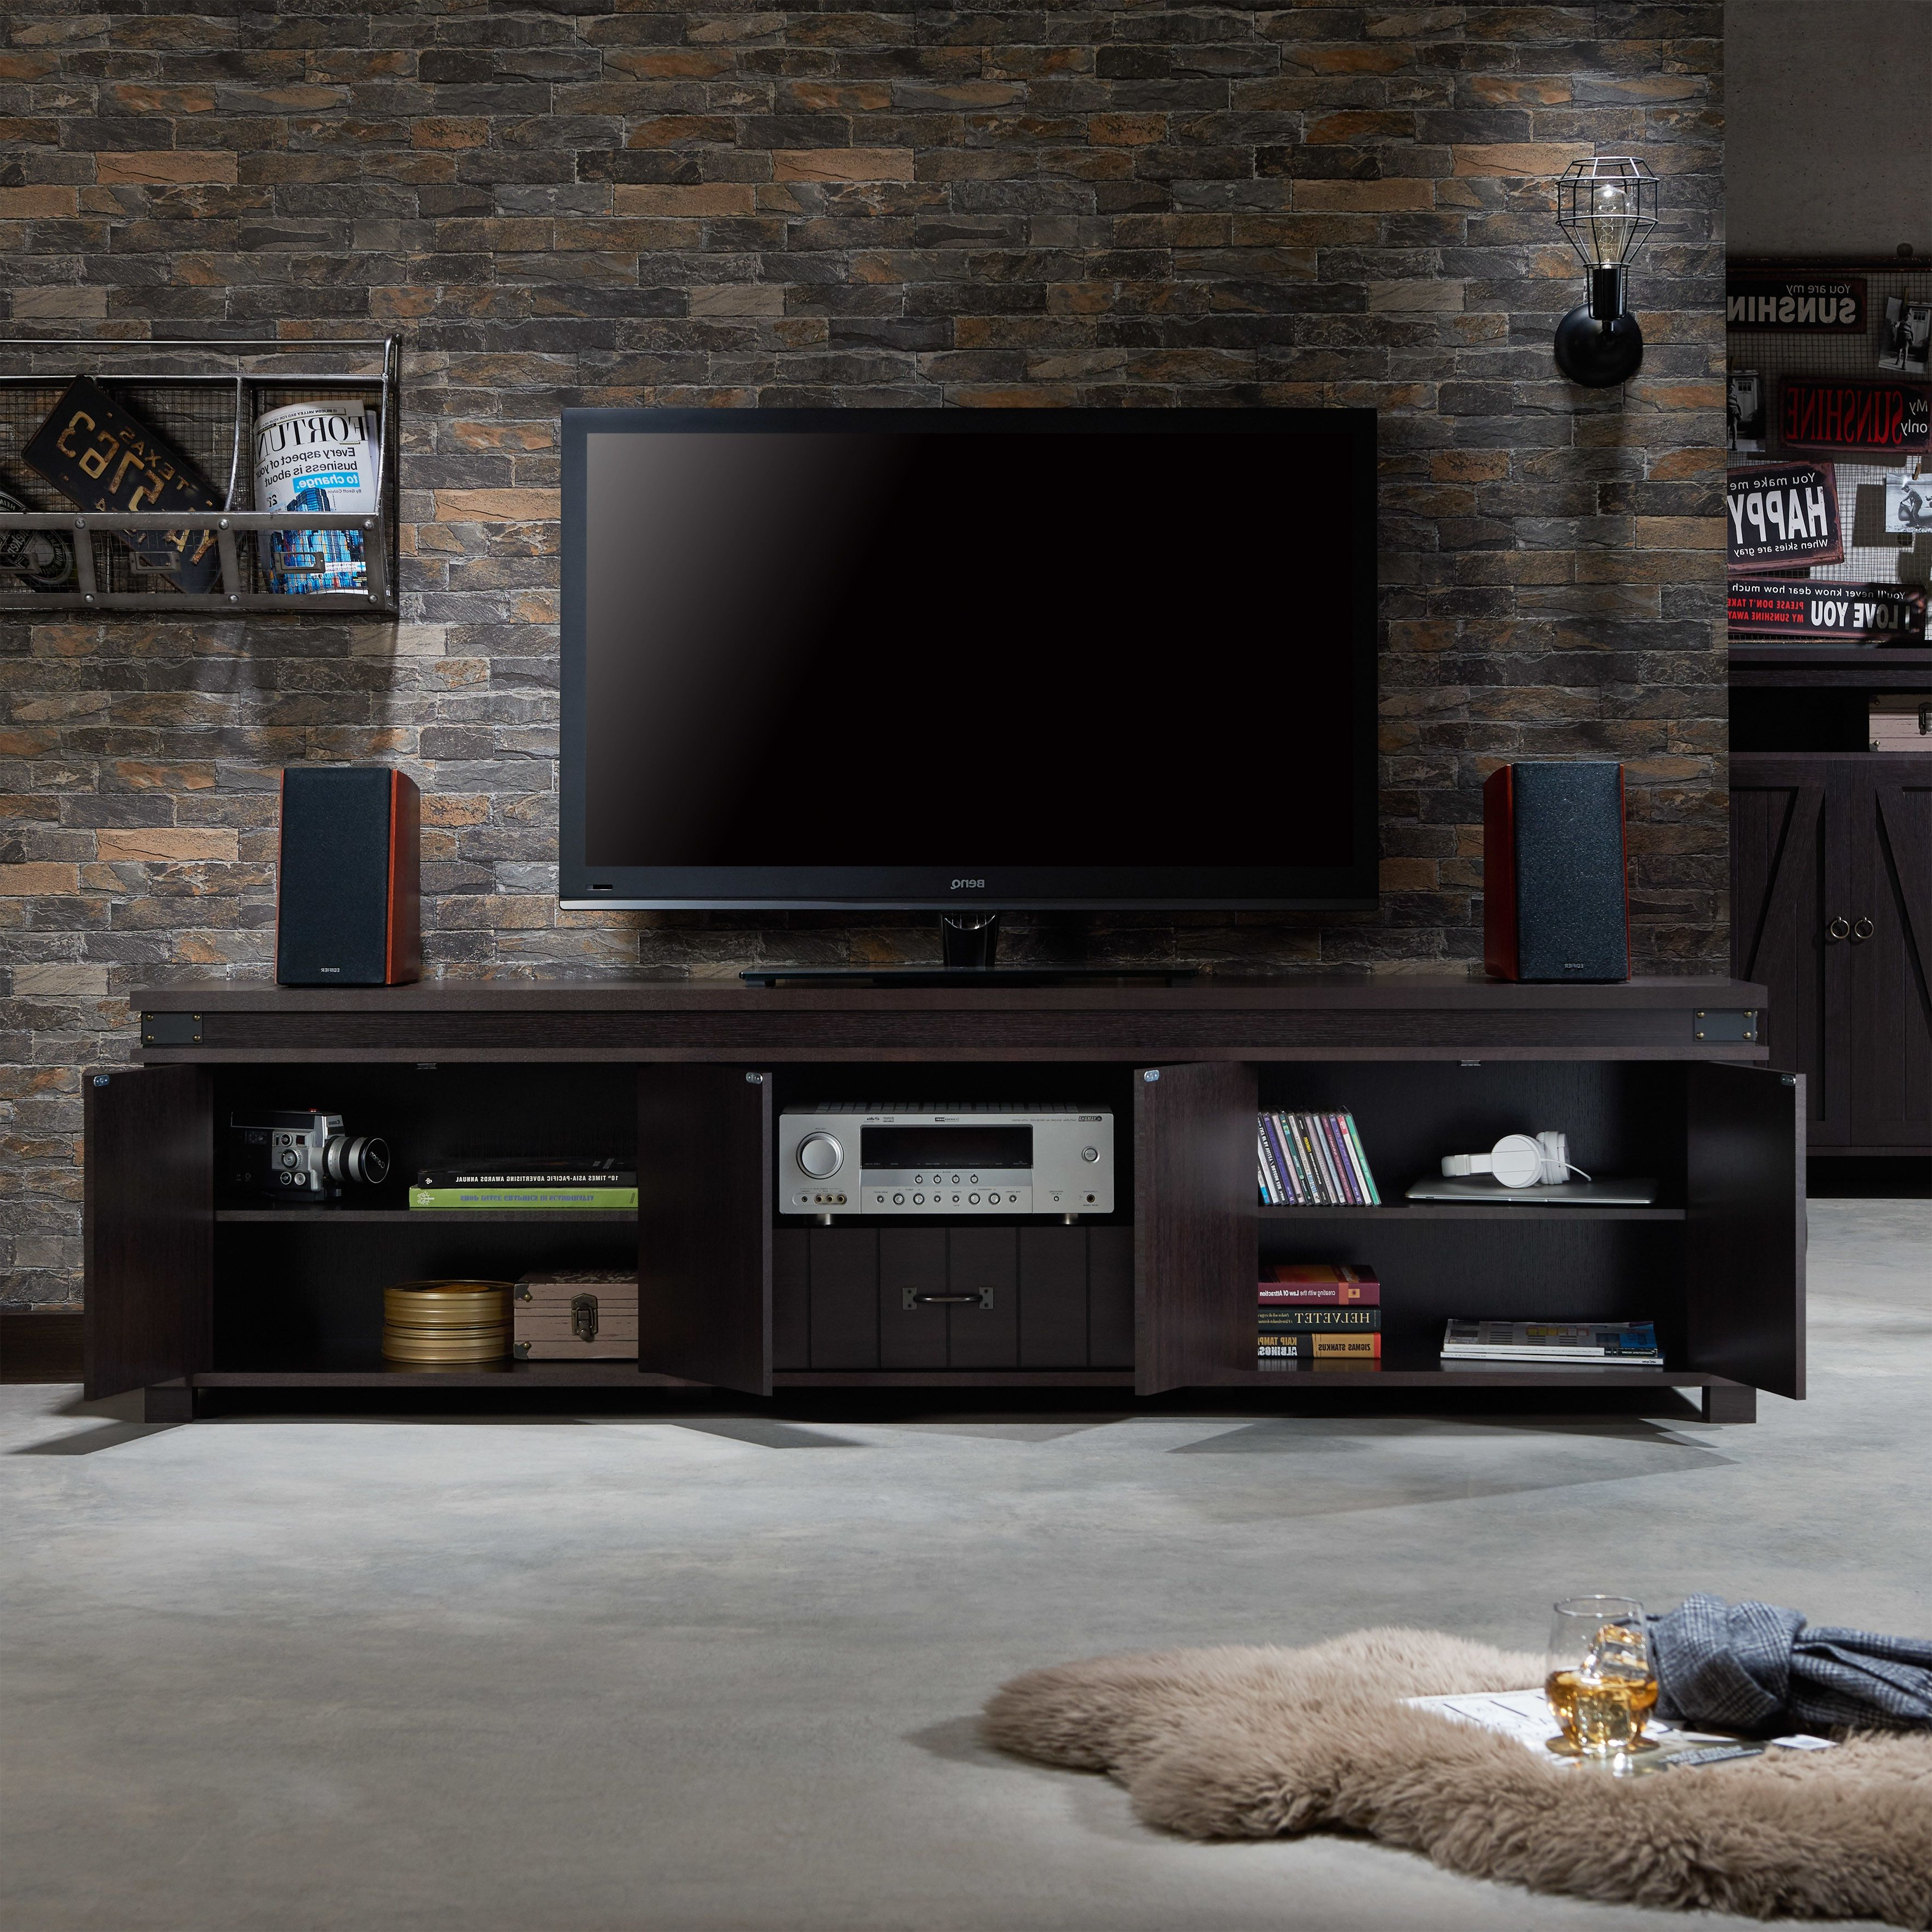 Furniture Of America Teglar Espresso Finish Wood 82 Inch Tv Stand Throughout Oxford 84 Inch Tv Stands (View 6 of 20)